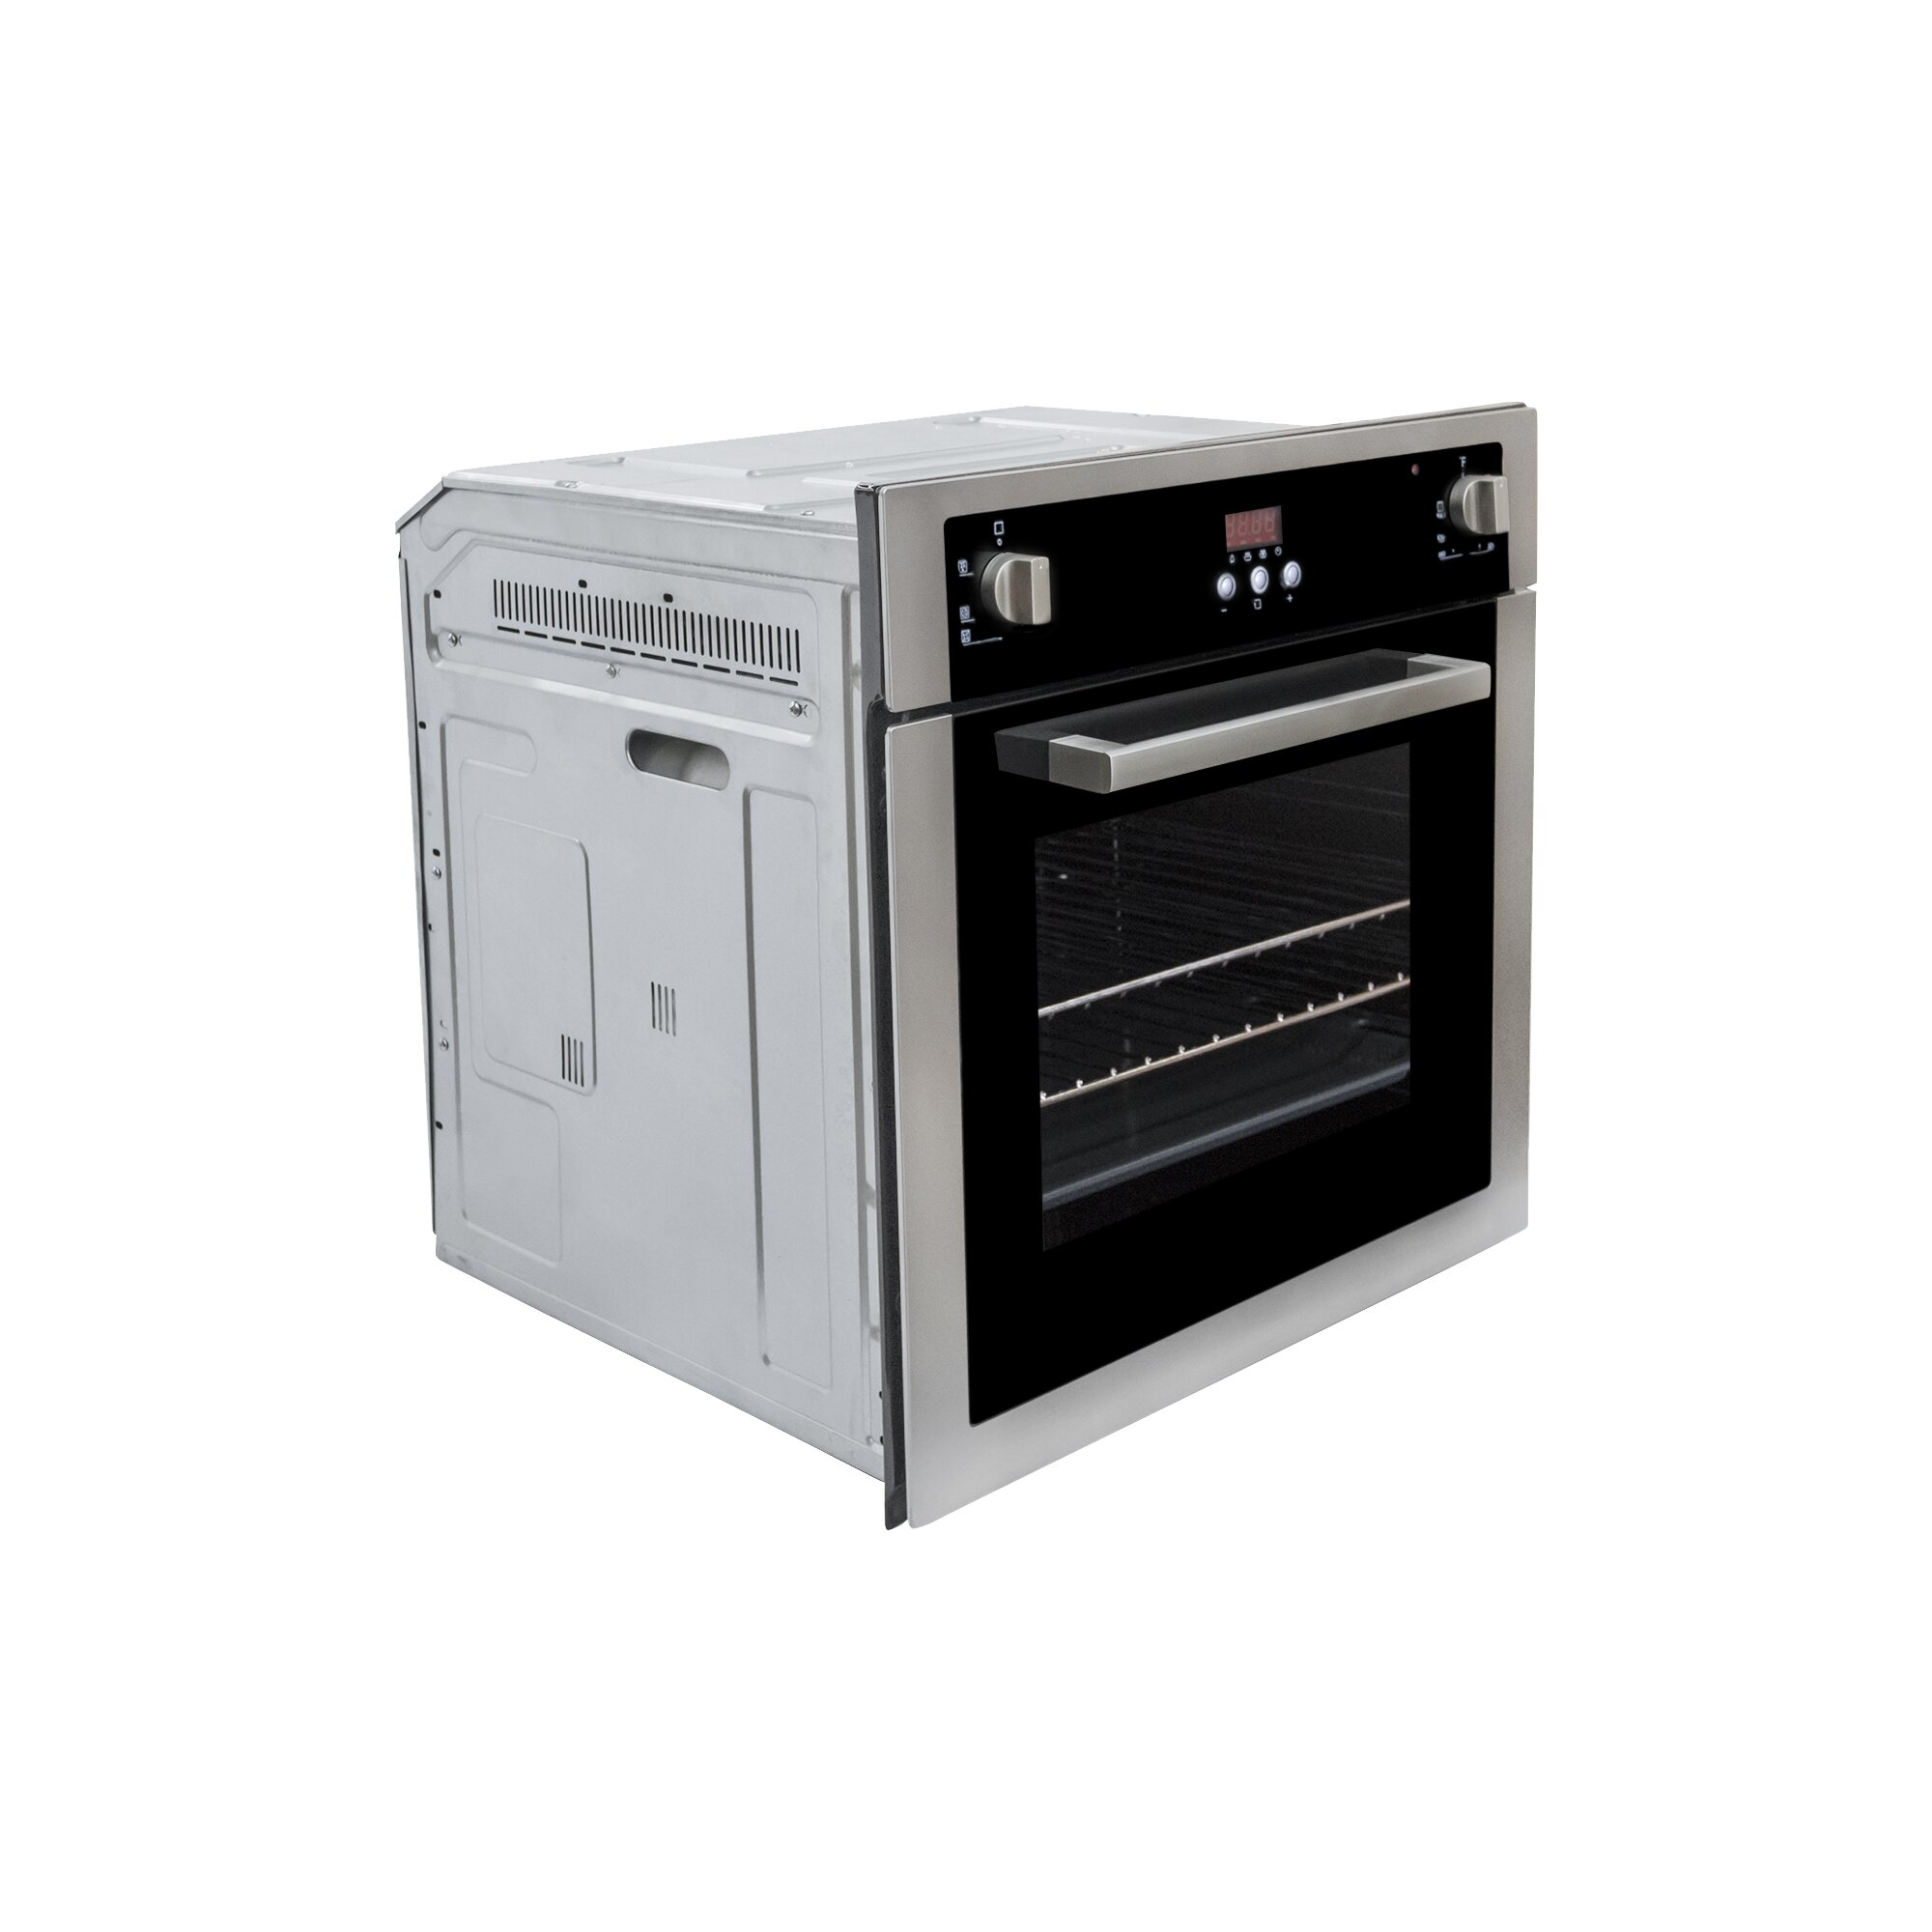 Unique Wall Oven Reviews About My Blog